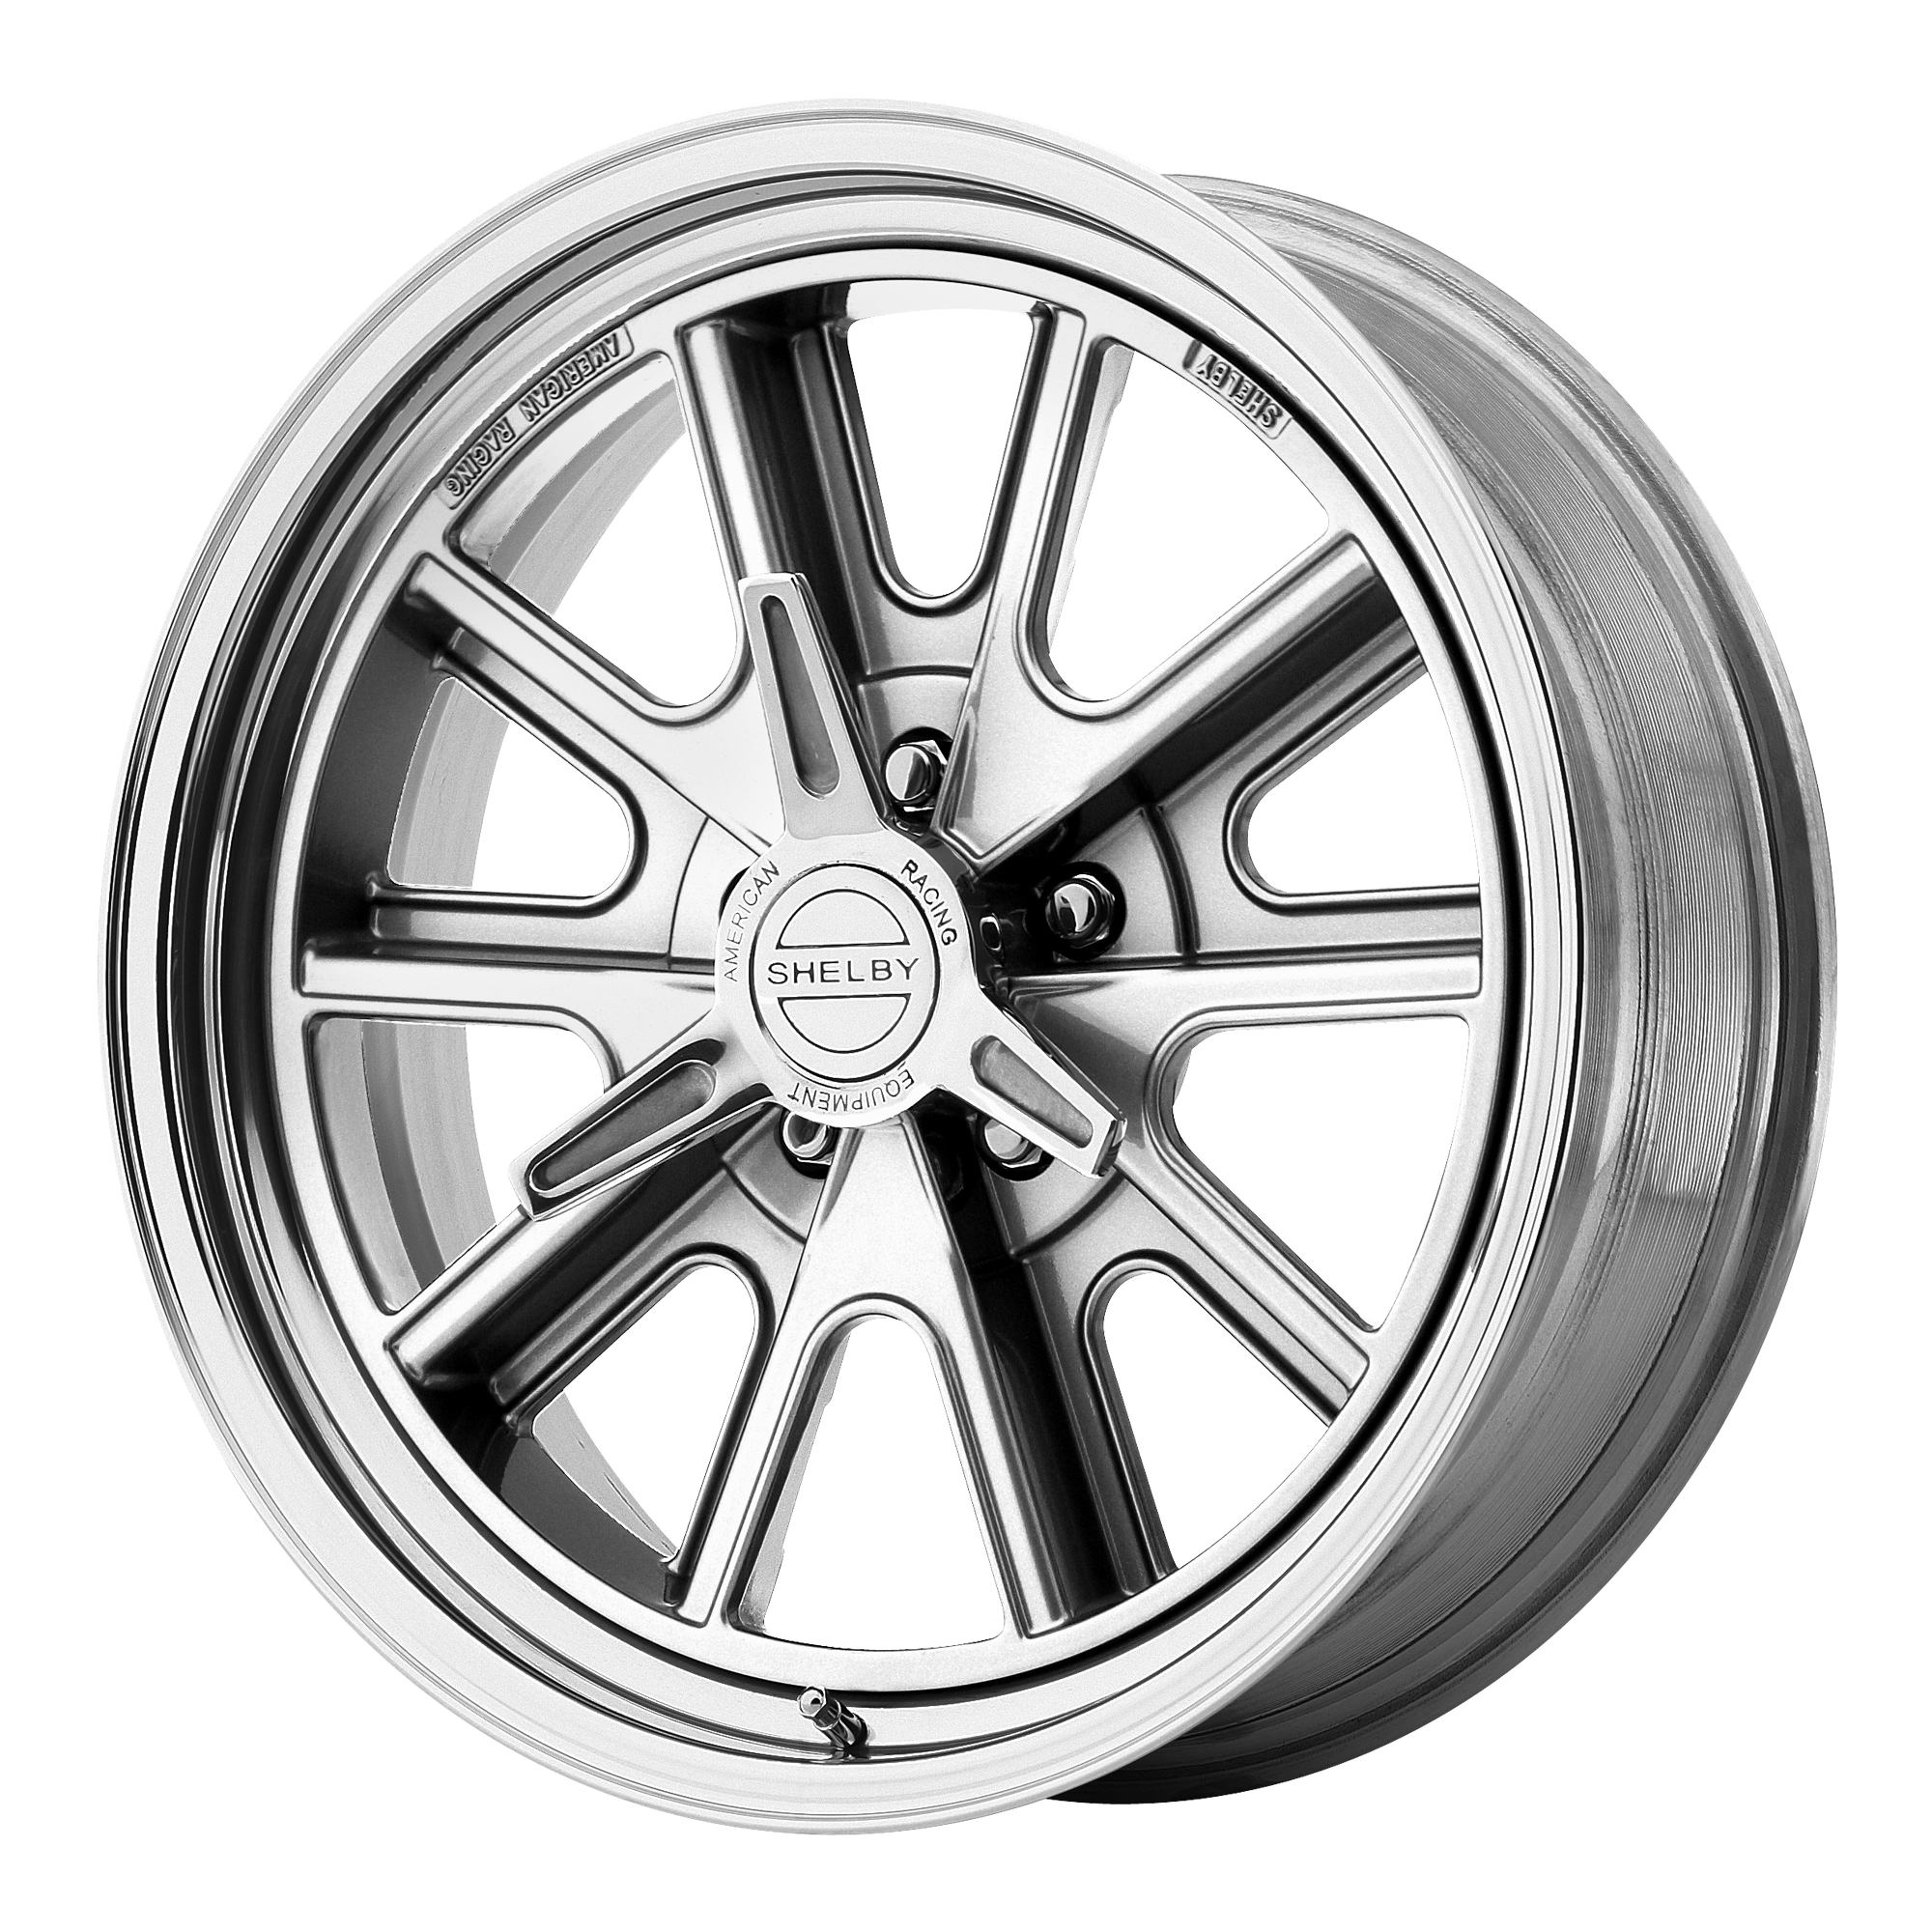 American Racing Wheels VN427 SHELBY COBRA Polished